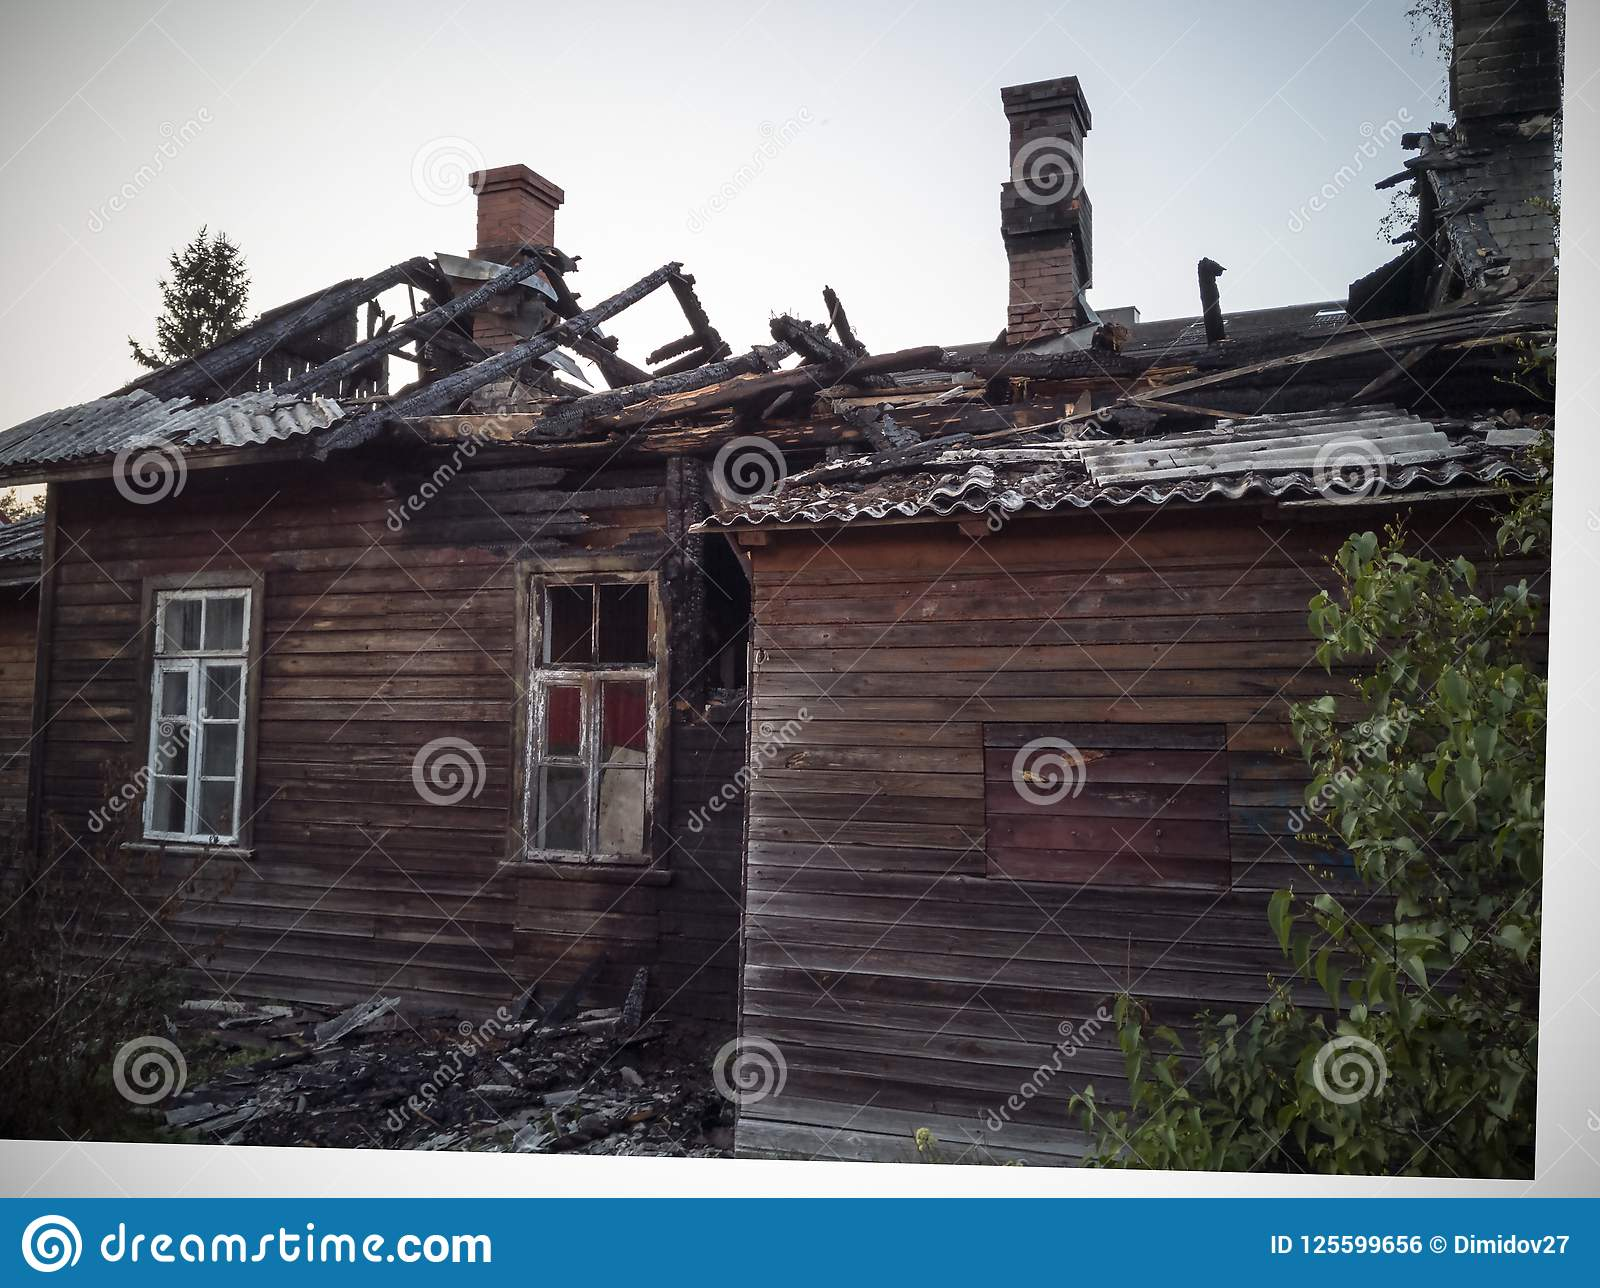 Burned-down Wooden House Stock Photo  Image Of Construction